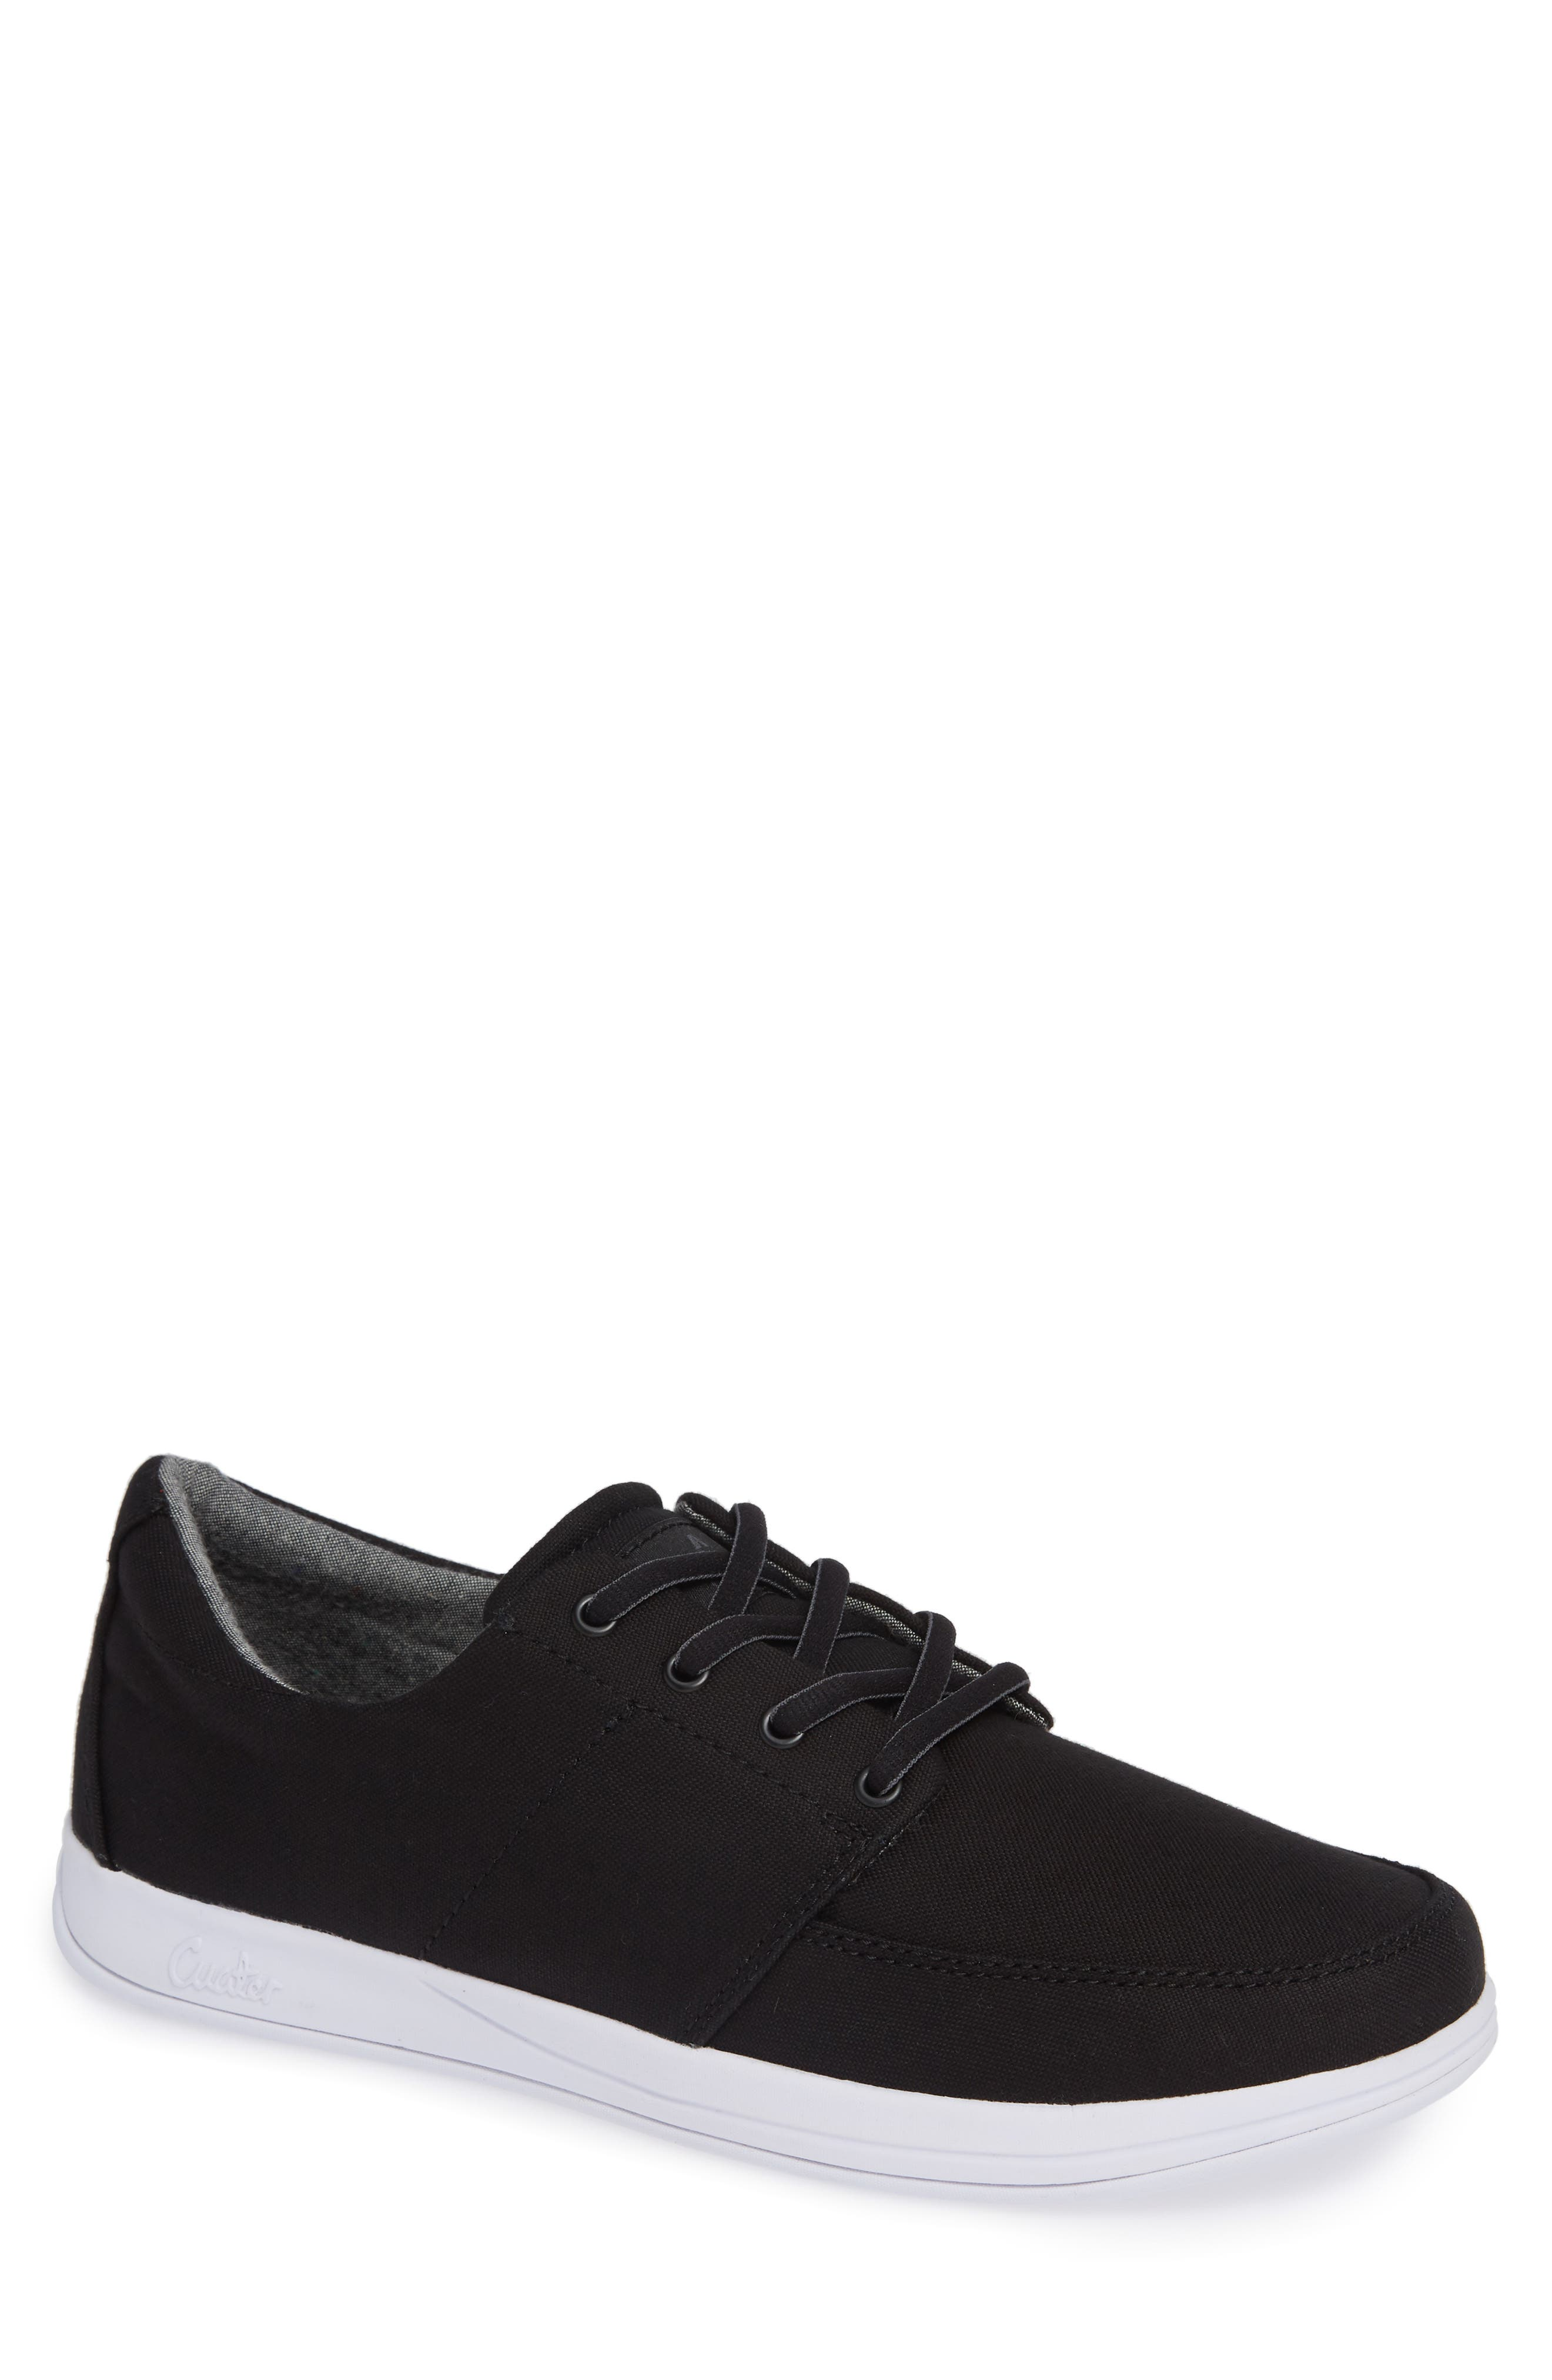 Cuater by Travis Mathew  Quincy Sneaker,                             Main thumbnail 1, color,                             BLACK